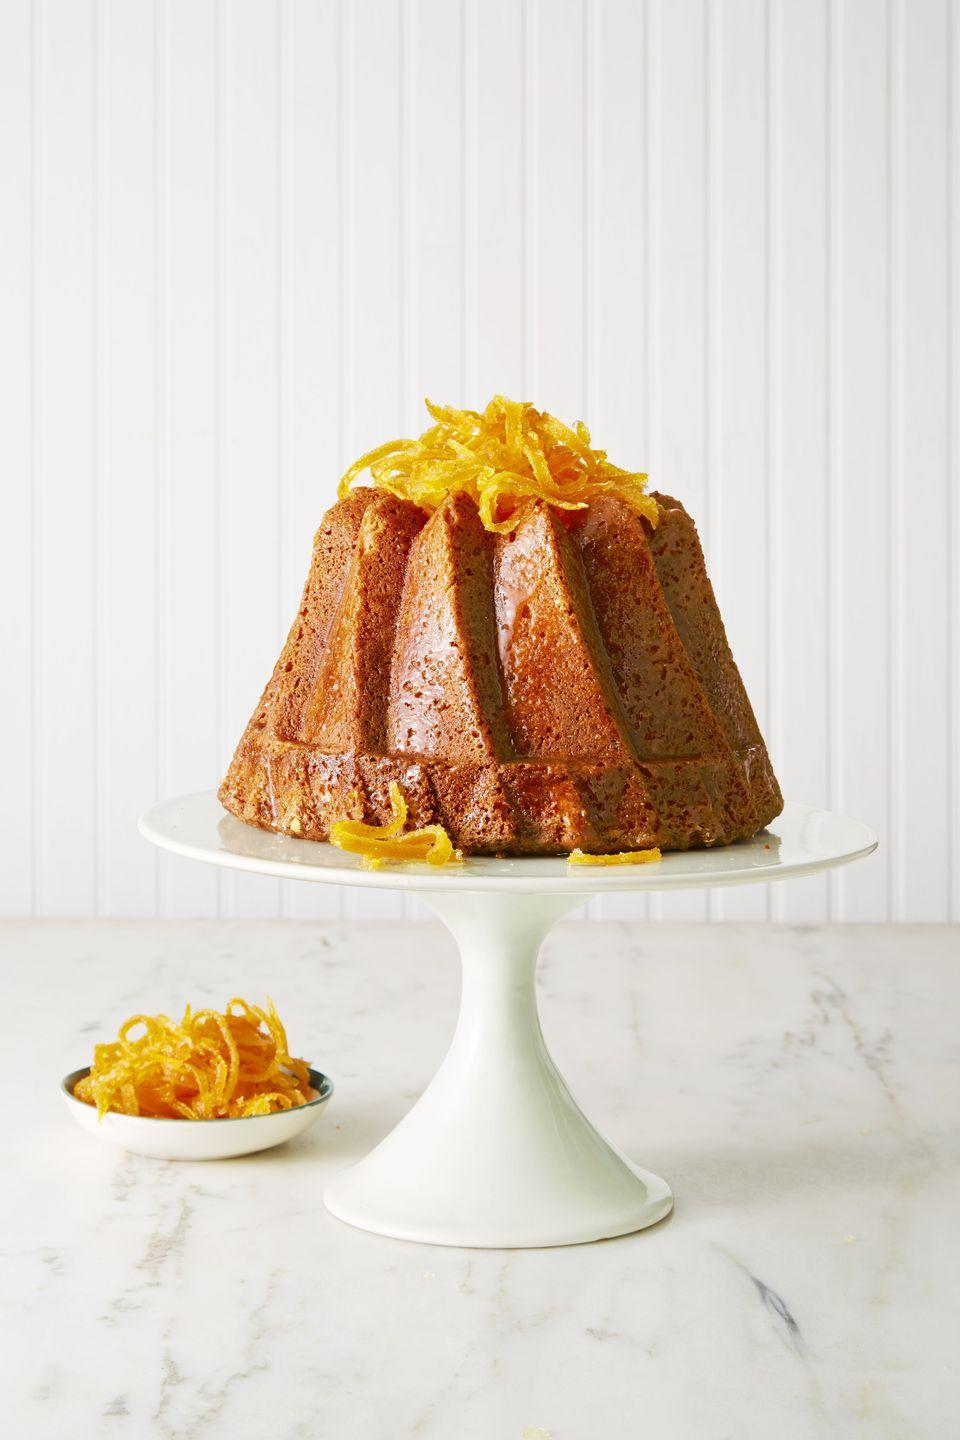 "<p>Lemon, orange, and lime zest bring plenty of punch to this bright dessert that'll instantly perk up a dreary fall day.</p><p><em><a href=""https://www.goodhousekeeping.com/food-recipes/dessert/a38286/triple-citrus-bundt-recipe/"" rel=""nofollow noopener"" target=""_blank"" data-ylk=""slk:Get the recipe for Triple Citrus Bundt »"" class=""link rapid-noclick-resp"">Get the recipe for Triple Citrus Bundt »</a></em></p><p><strong>RELATED: </strong><a href=""https://www.goodhousekeeping.com/food-recipes/g32256776/baking-recipes/"" rel=""nofollow noopener"" target=""_blank"" data-ylk=""slk:40 Easy Baking Recipes For All Your Sweet Treat Cravings"" class=""link rapid-noclick-resp"">40 Easy Baking Recipes For All Your Sweet Treat Cravings</a></p>"